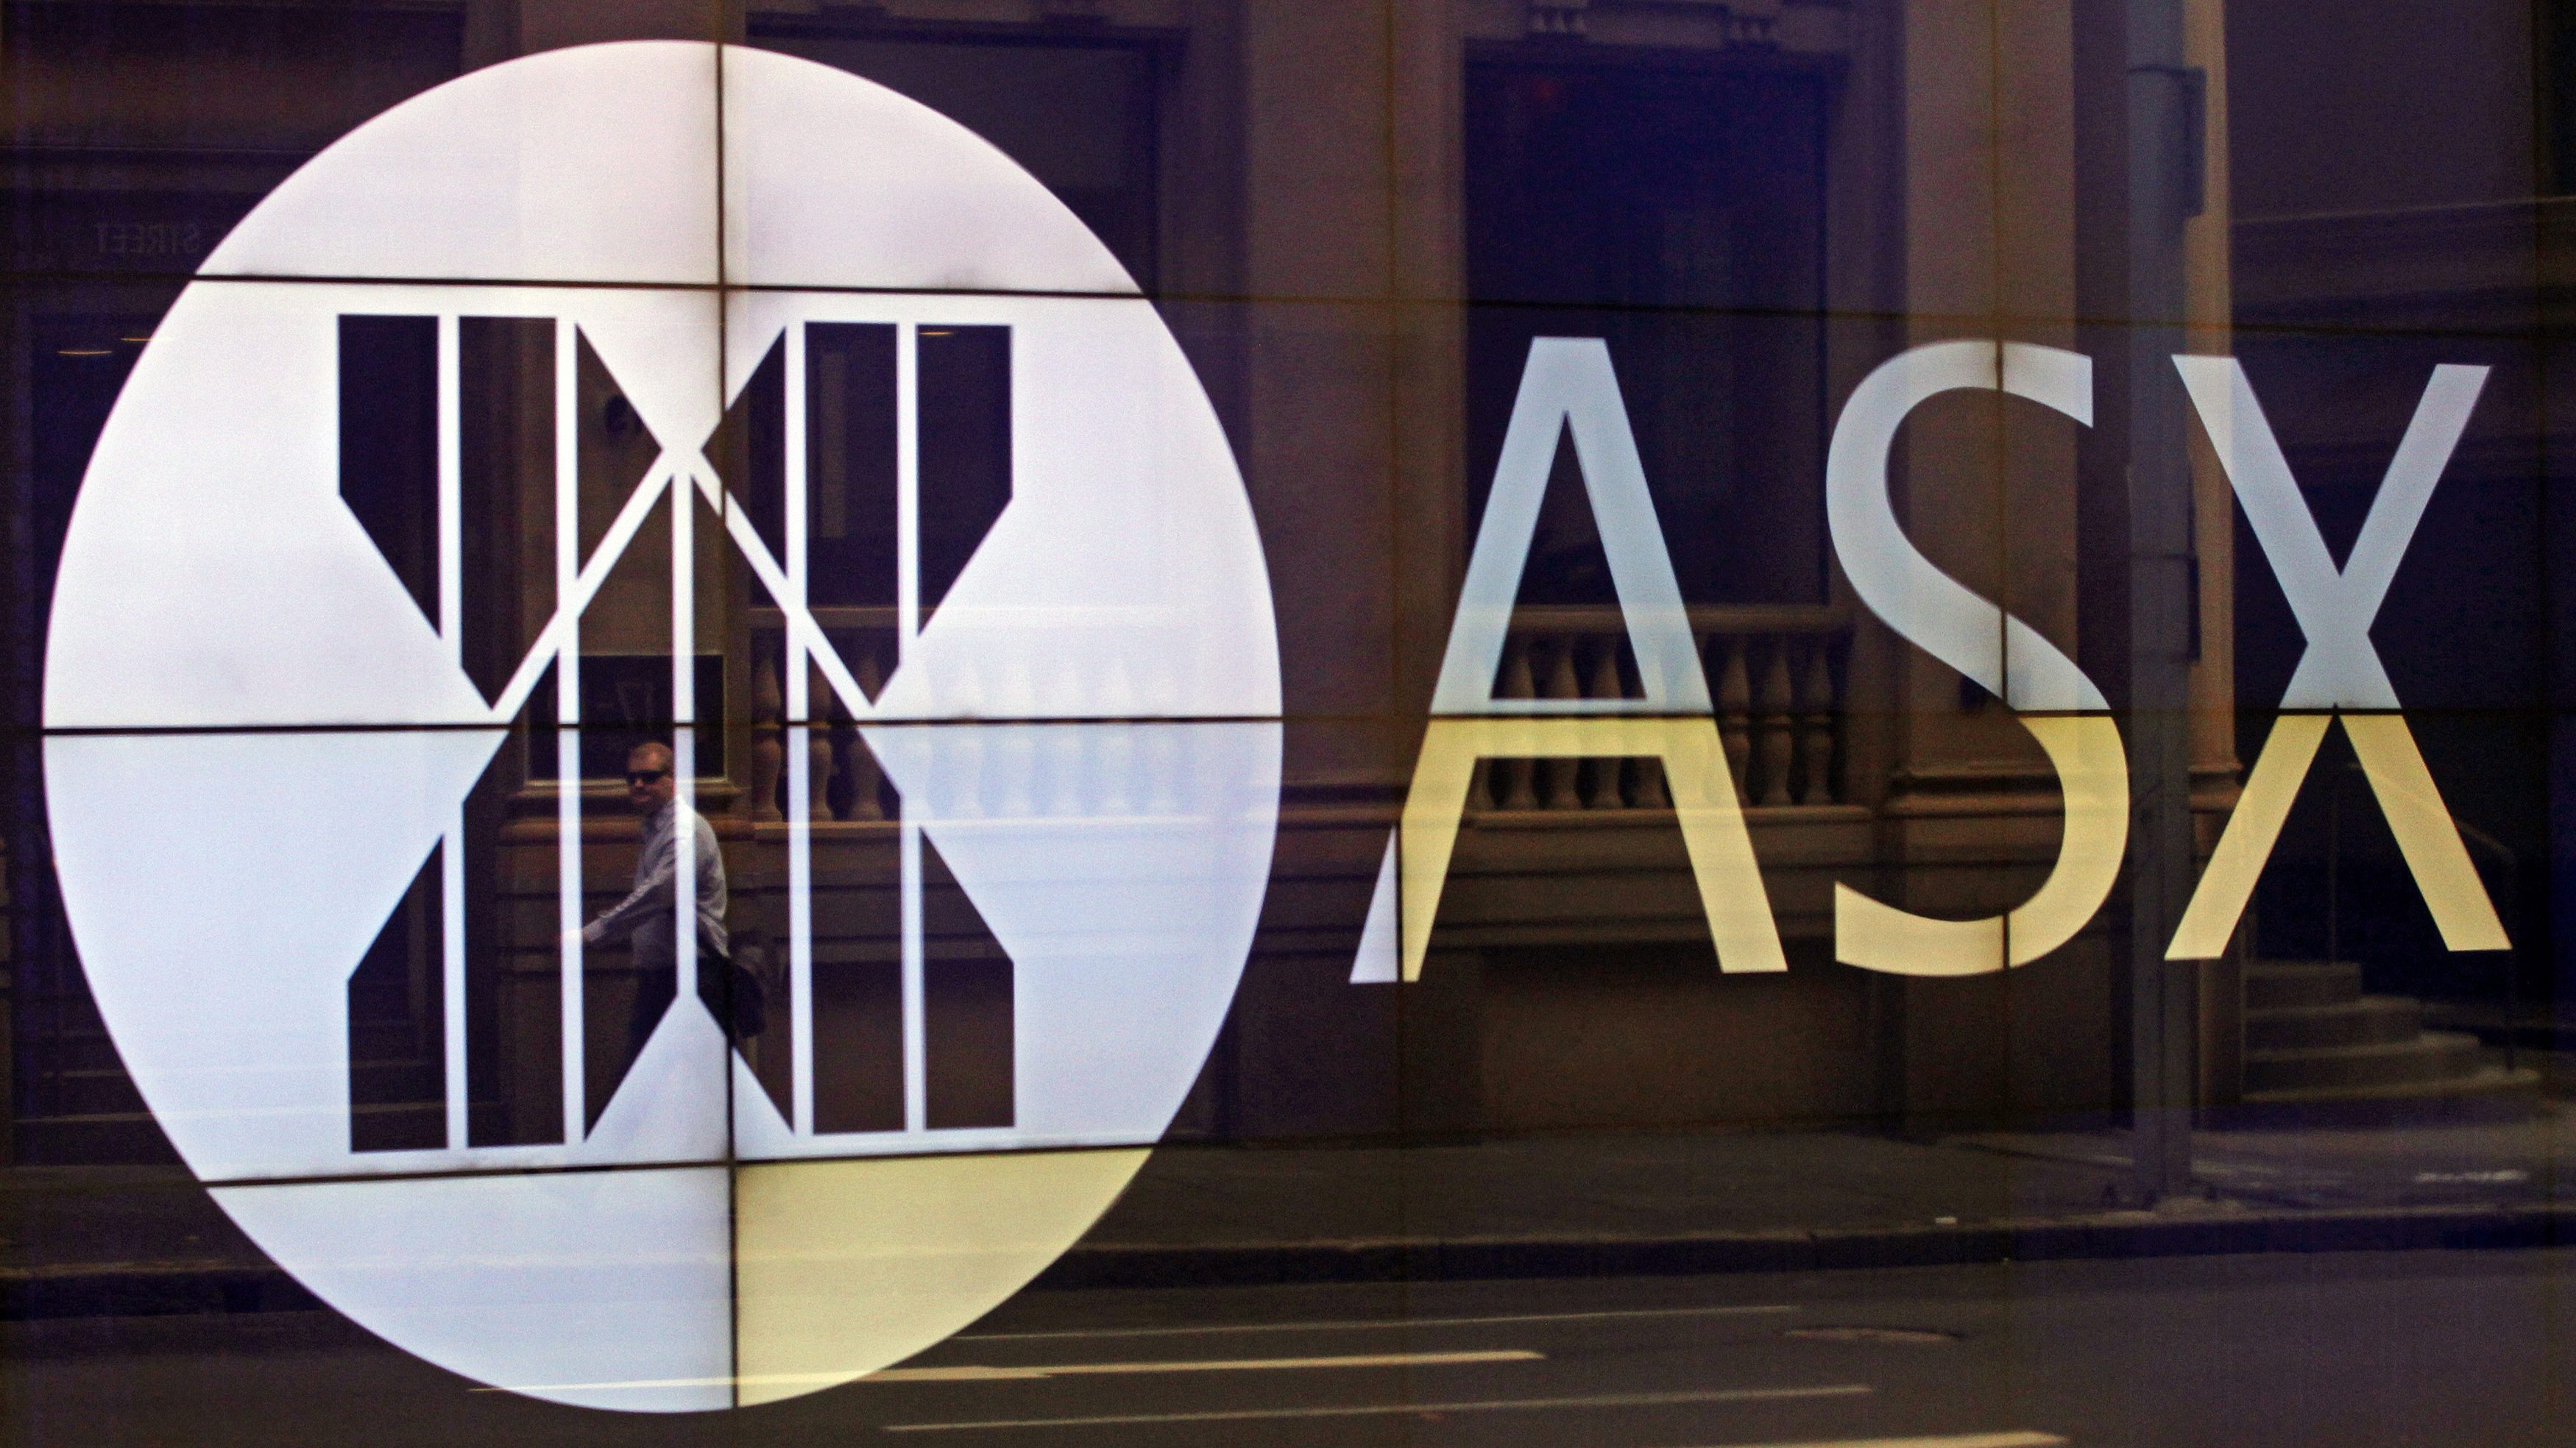 An office worker walks past the board of the Australian Securities Exchange building displaying its logo in central Sydney April 5, 2013. Australian shares inched up 0.1 percent on Friday, supported by the Bank of Japan's aggressive new stimulus policies to jump-start the Japanese economy, news that nudged Wall Street into positive territory overnight. REUTERS/Daniel Munoz (AUSTRALIA - Tags: BUSINESS LOGO) - GM1E9450KXA01